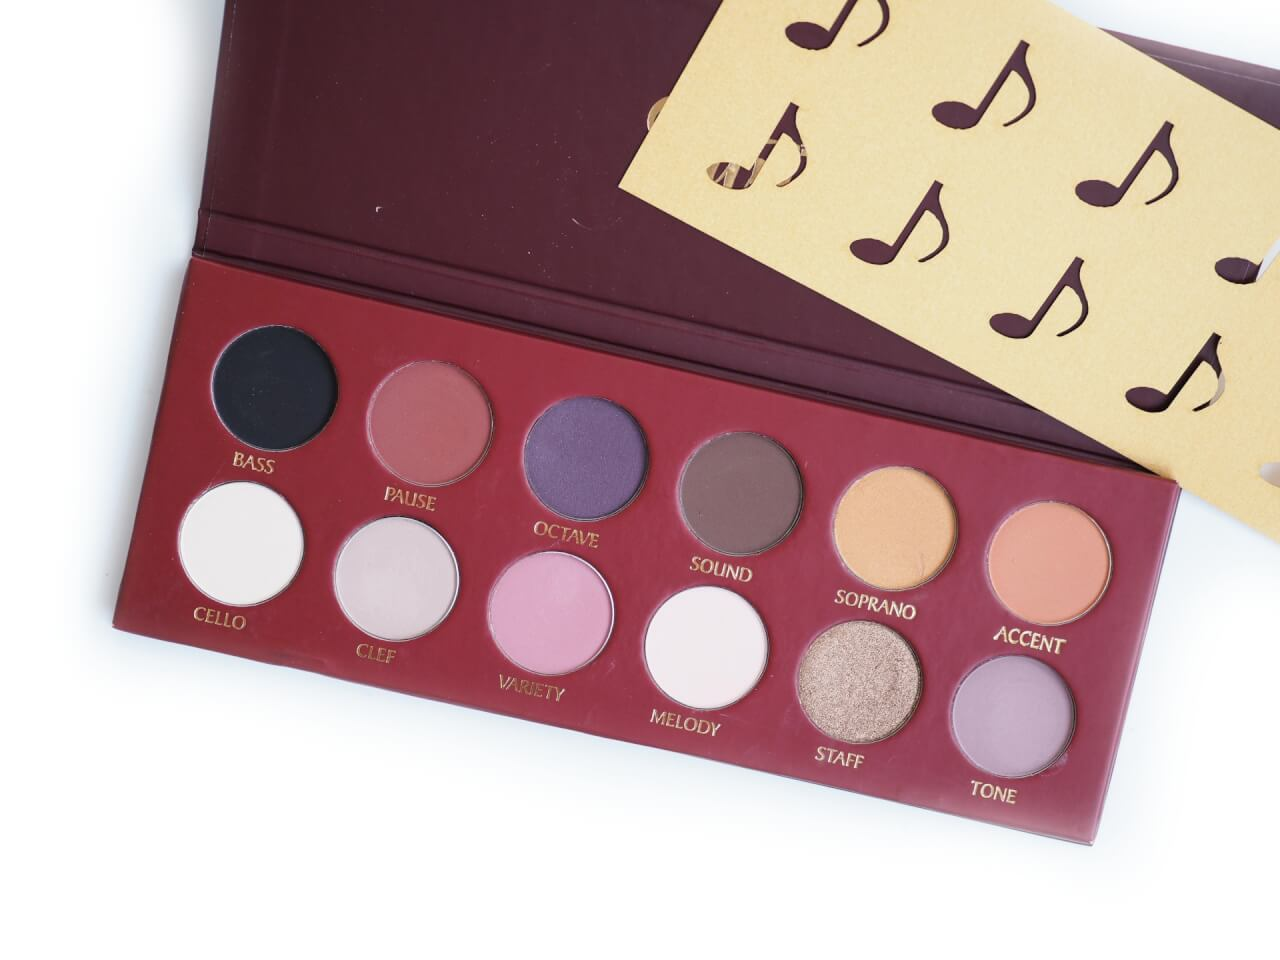 TUNE The (D)-dur Eyeshadow Palette